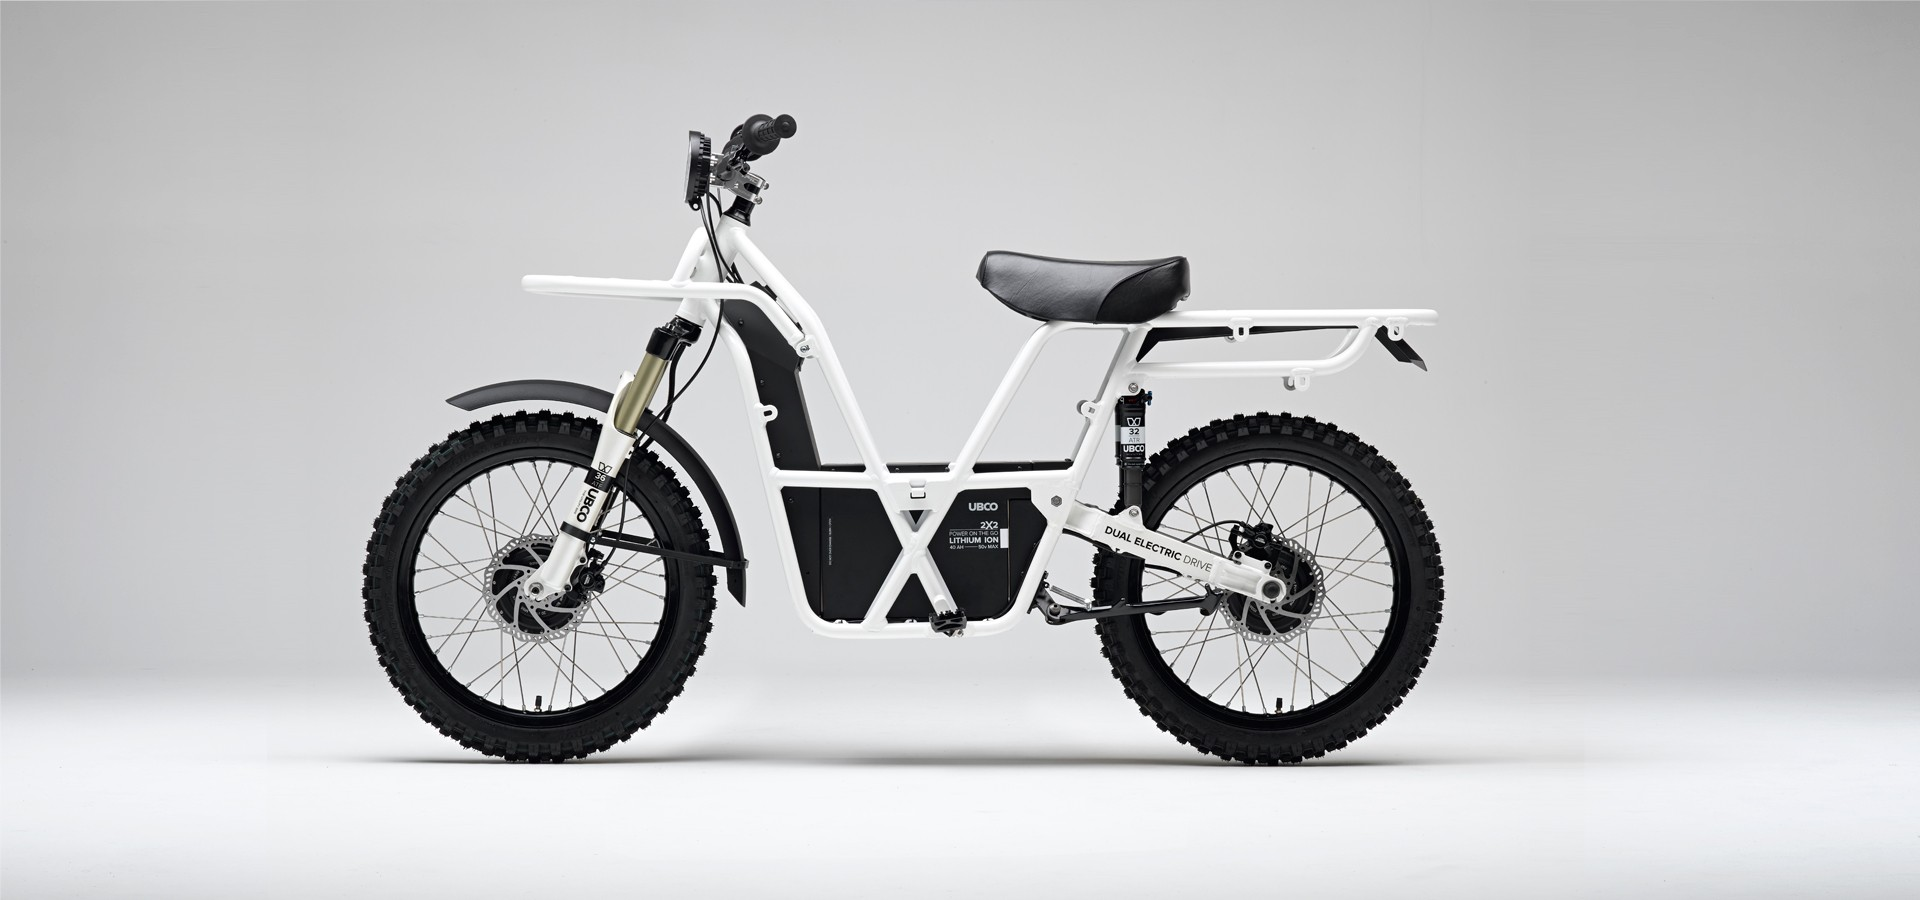 ubco-2x2-electric-bike